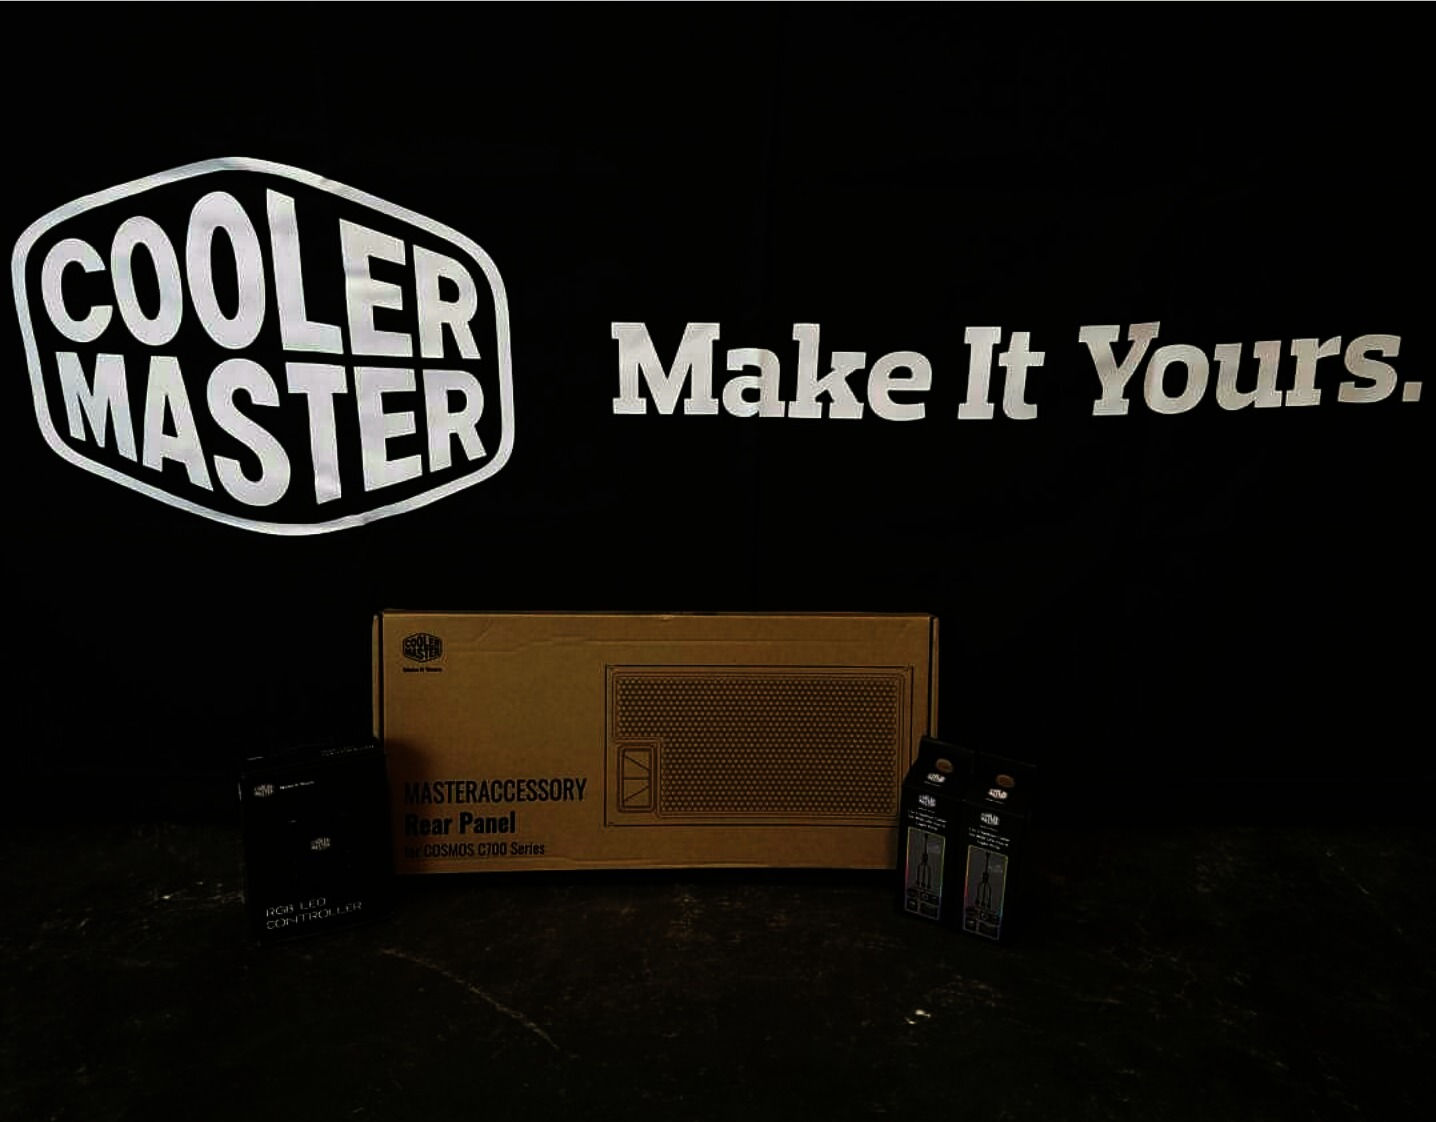 Void C700p Envious Mods Cooler Master Dual Curved Tempered Glass Side Panel For Cosmos C700 Specs